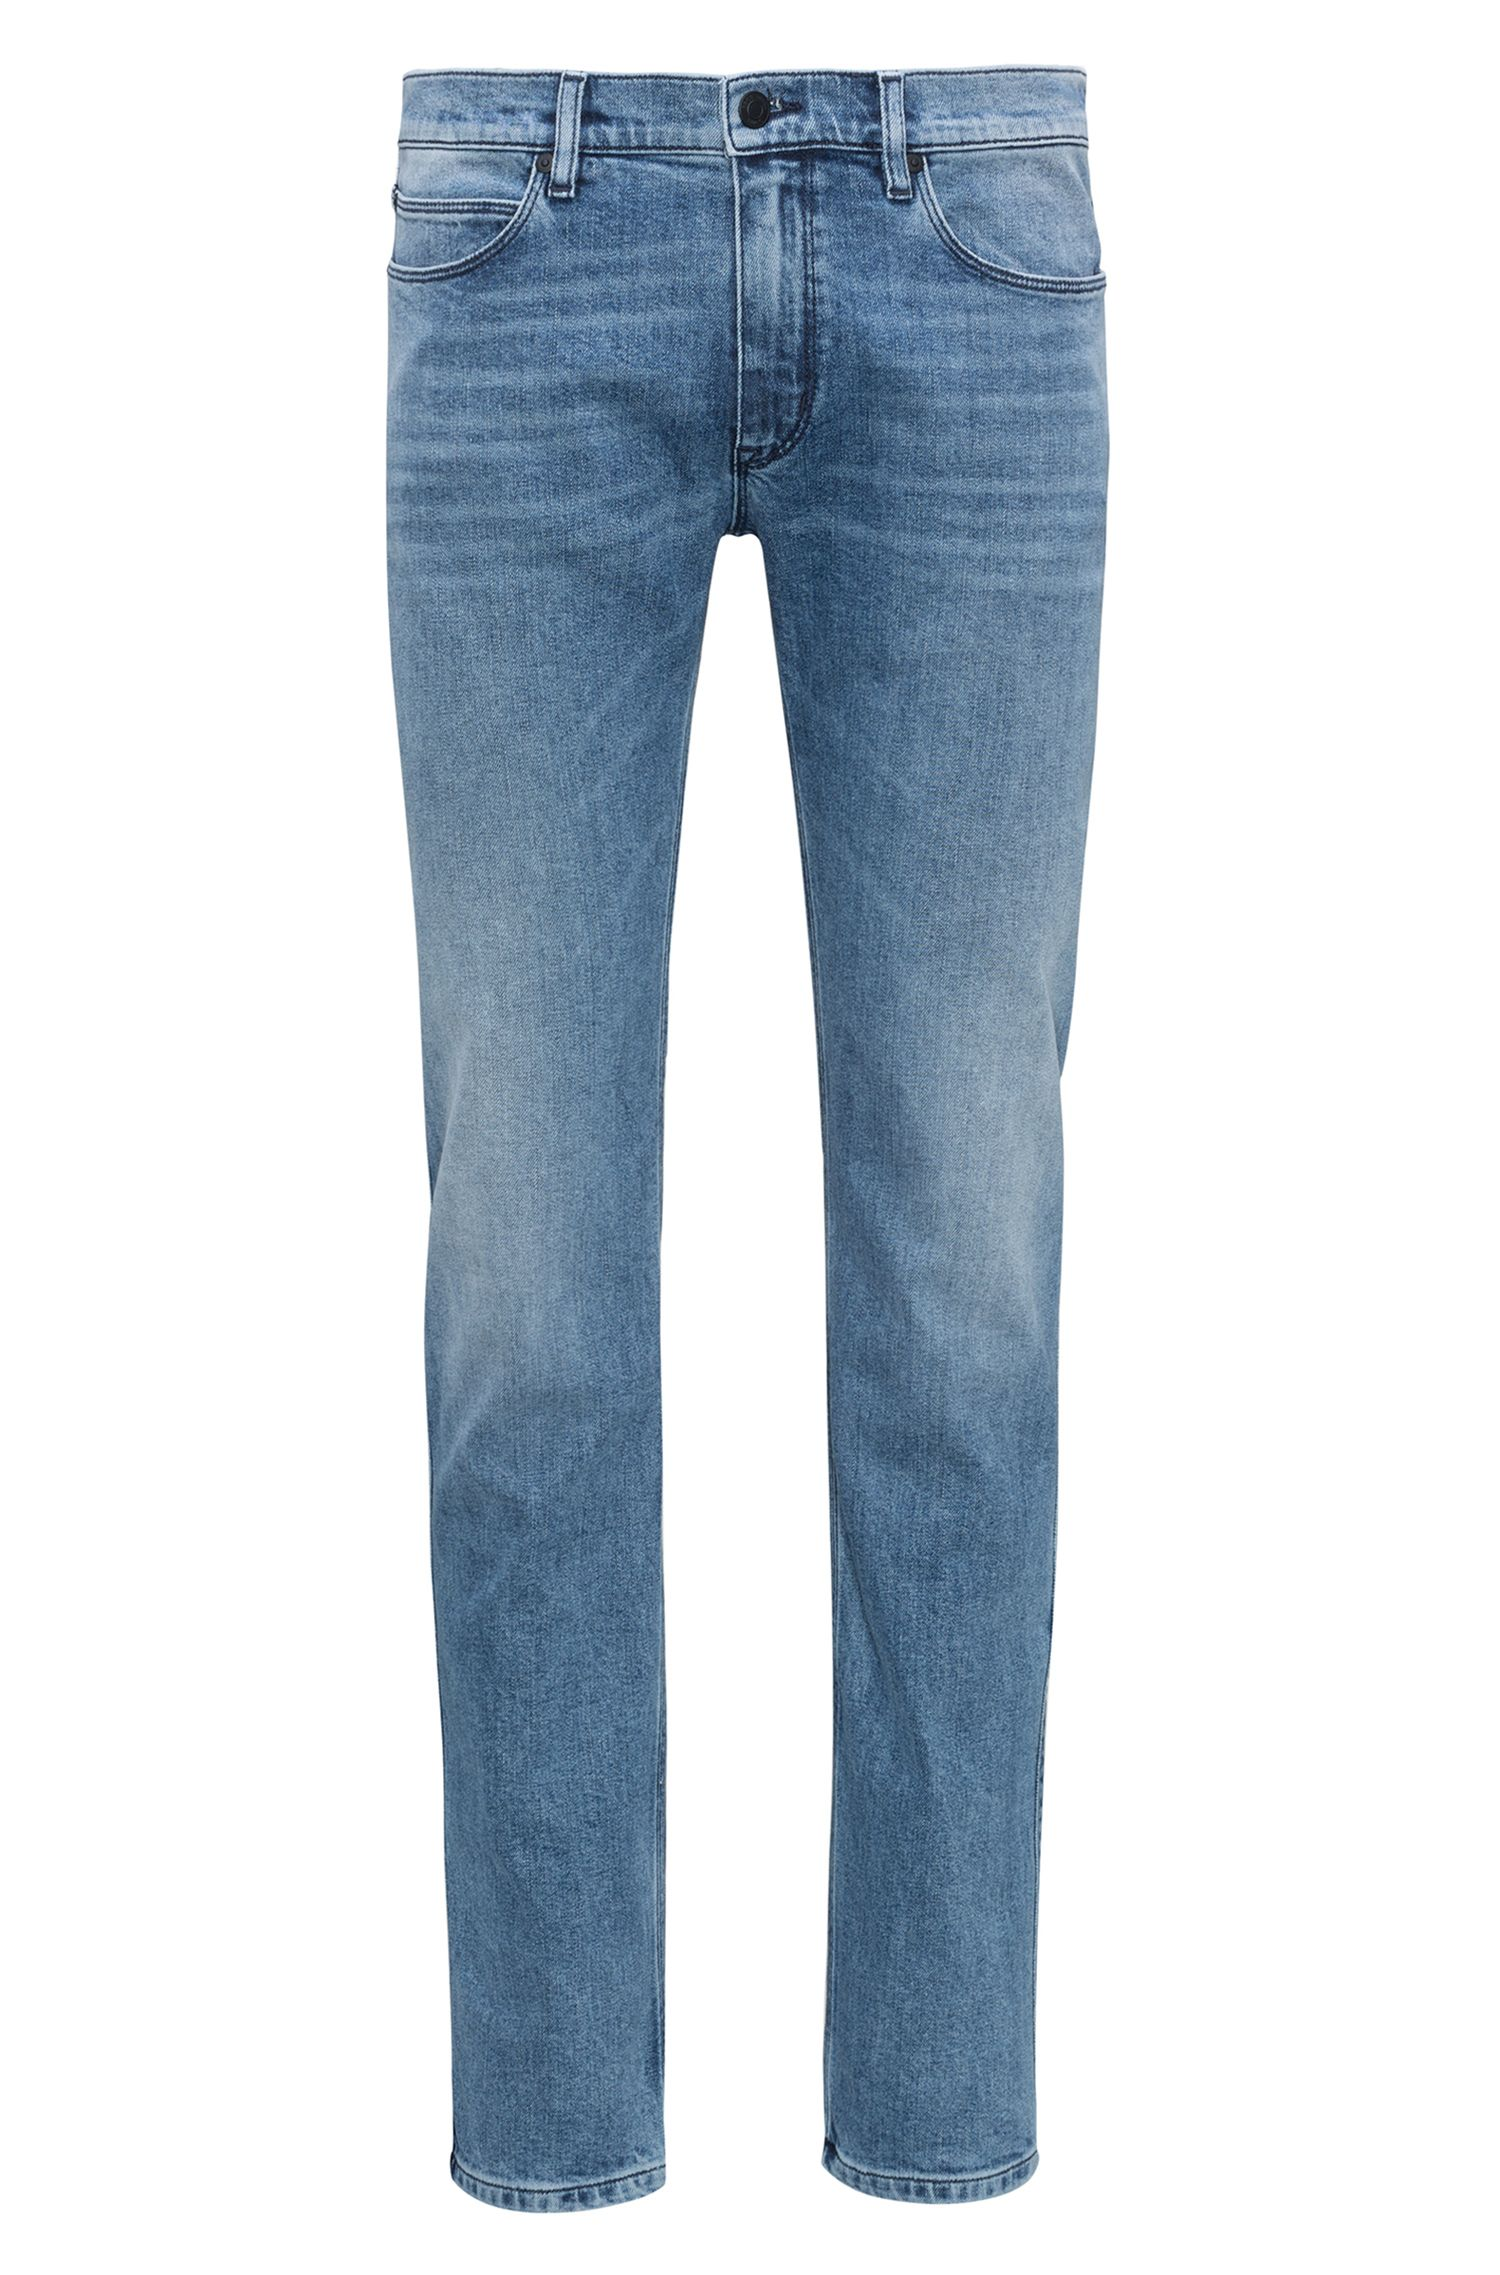 Hugo Boss - Slim-fit jeans in mid-blue stretch denim - 1